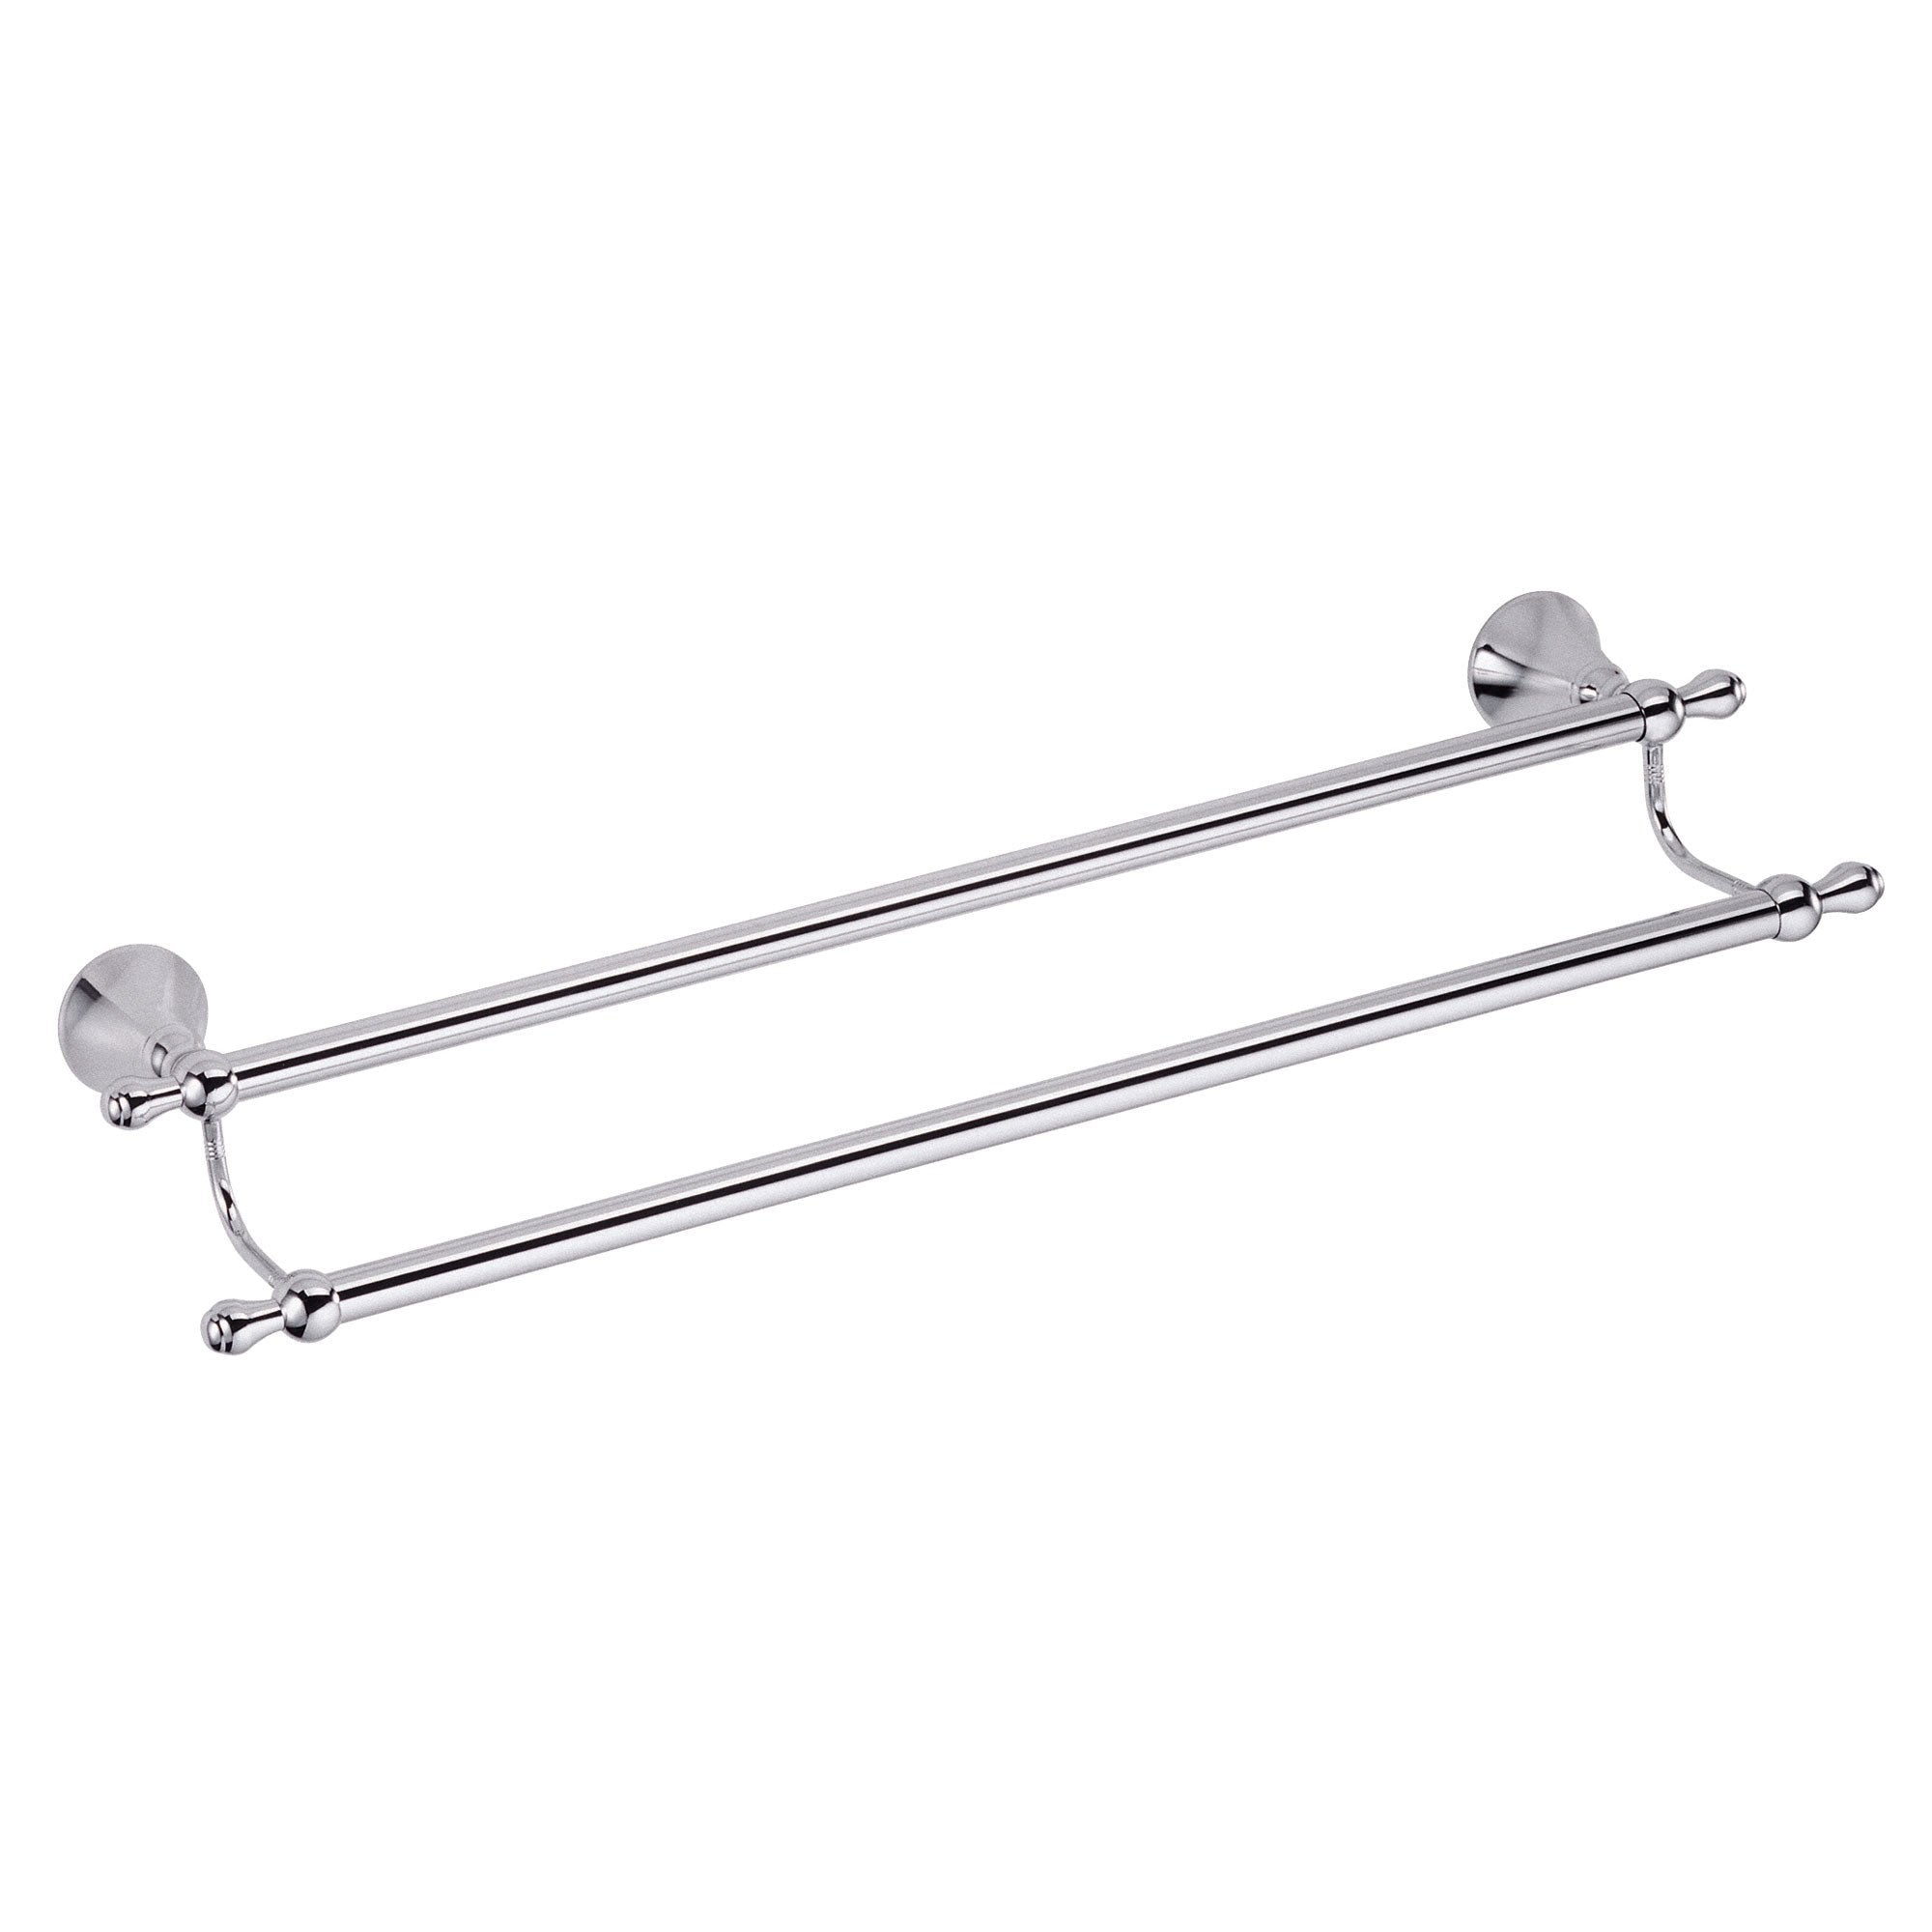 "Danze Bannockburn Towel Bars 24"" Chrome Double Towel Bar"